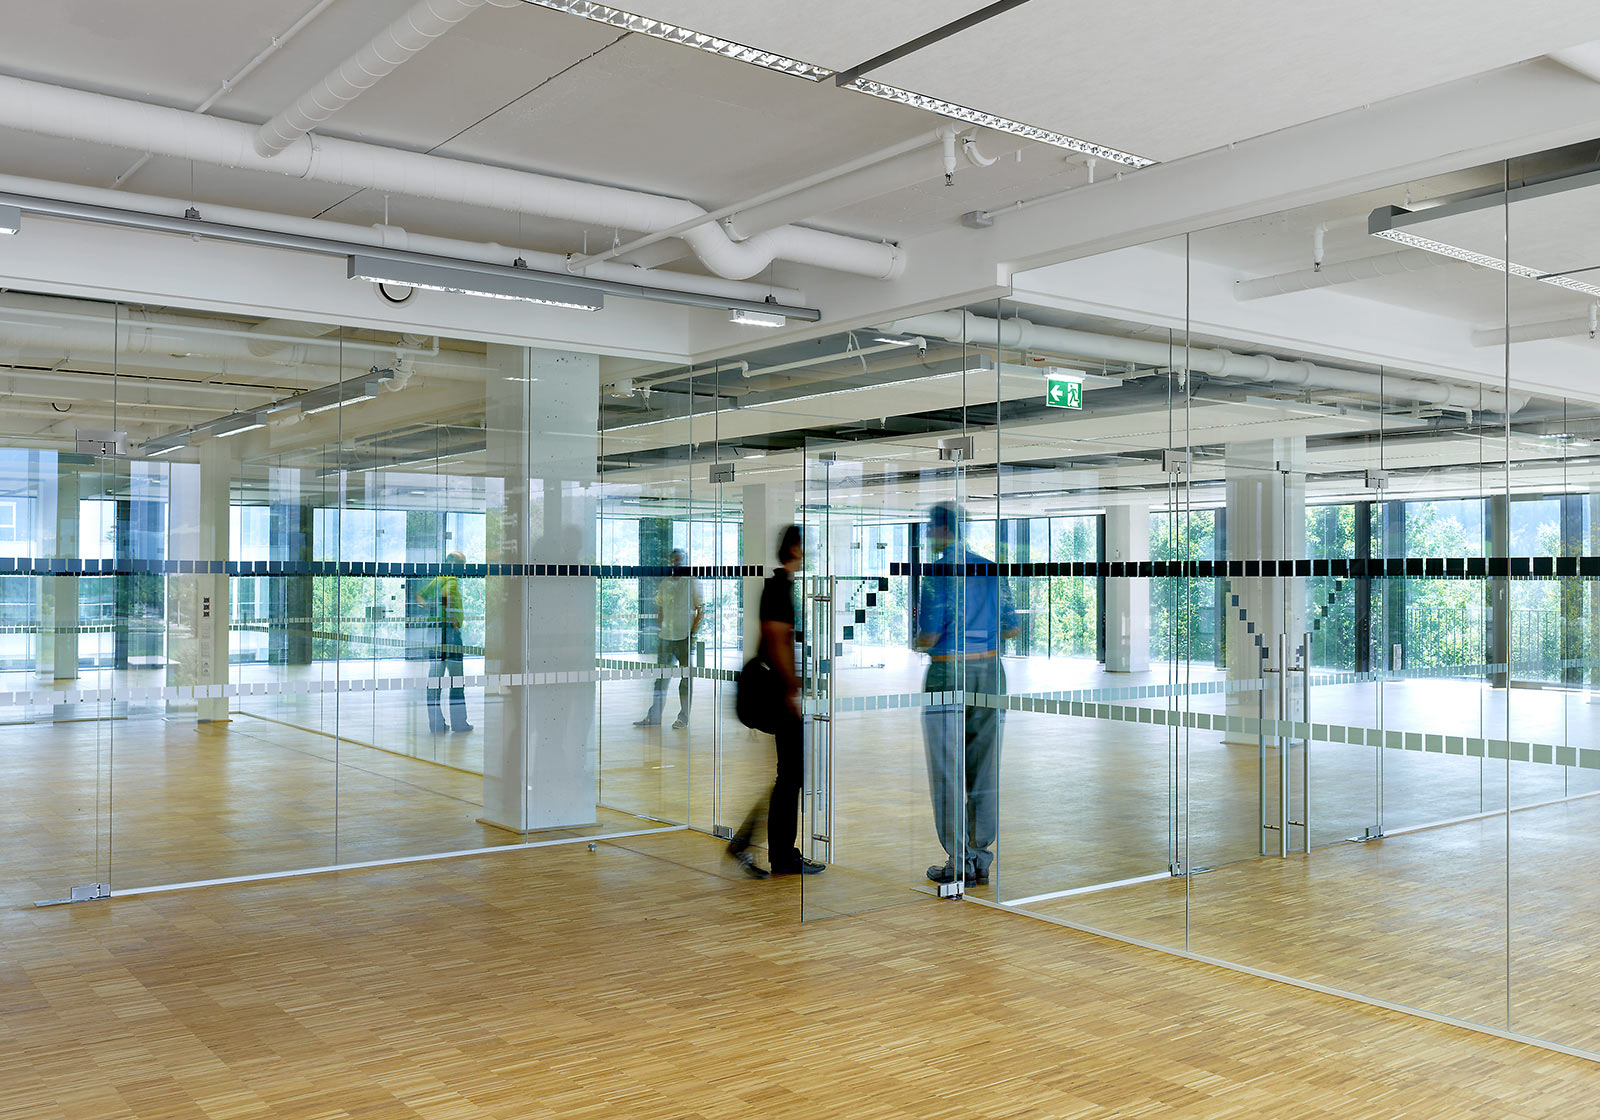 The full-height glazing, open ceilings and generous spatial configuration of the new studios. Photo: ATP/Jantscher